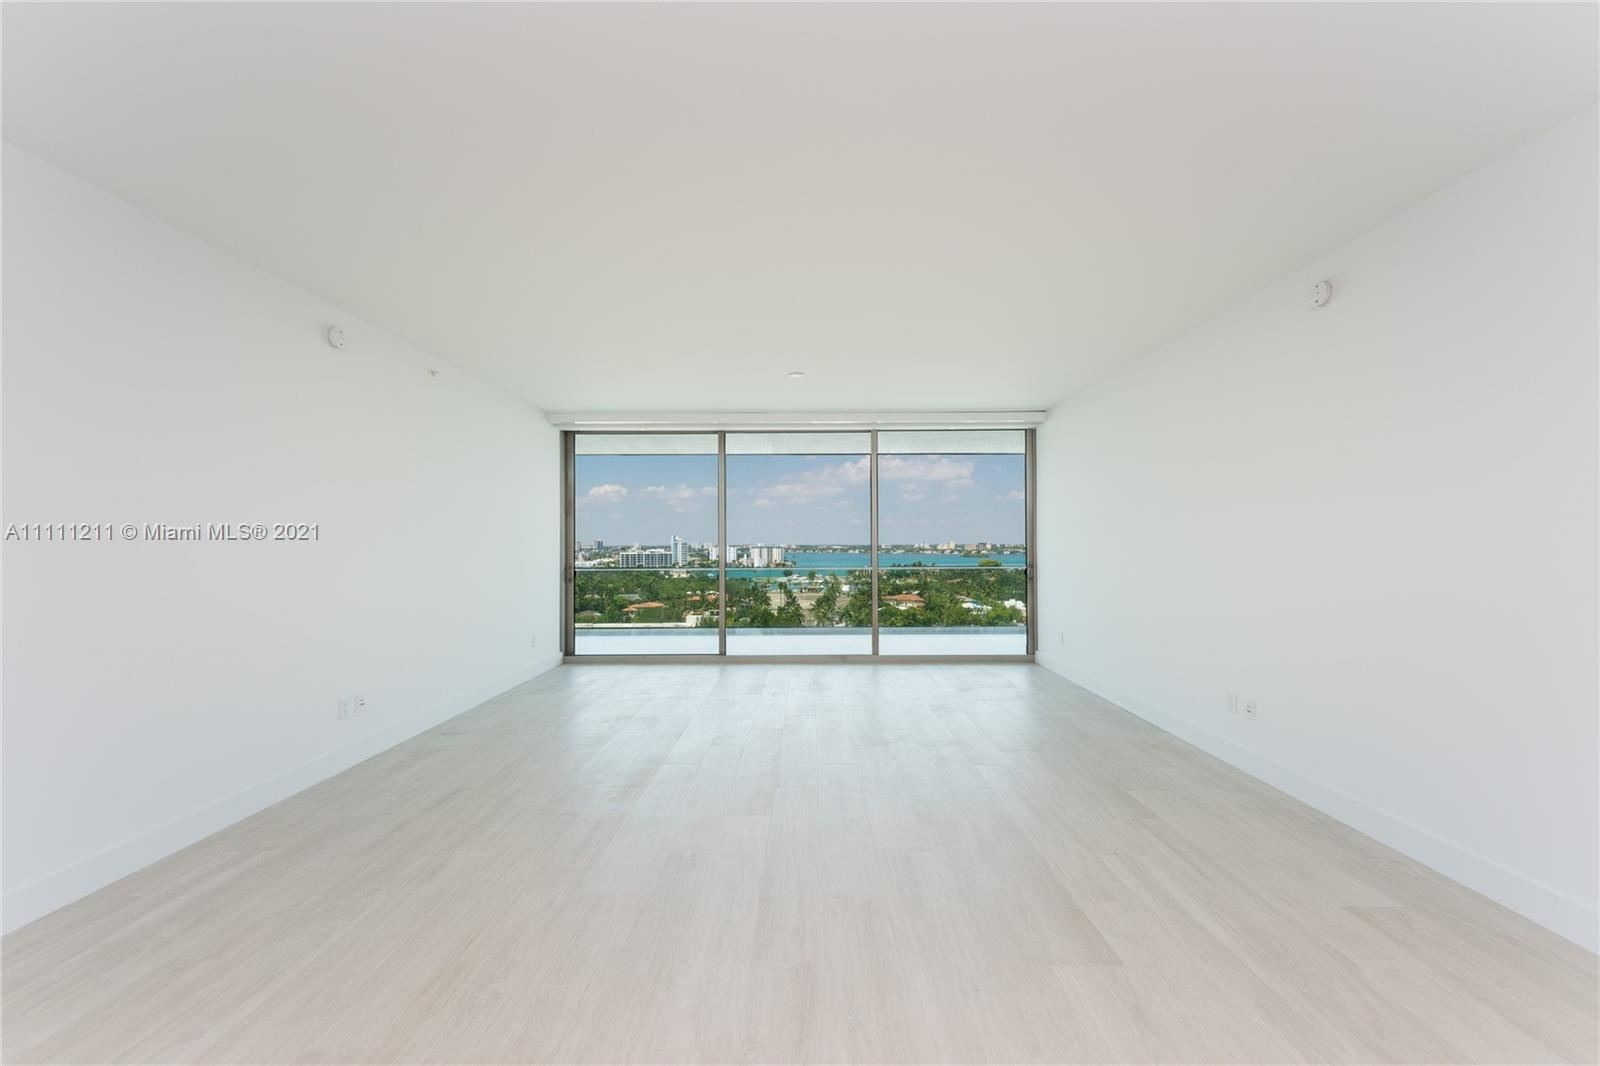 Photo of 10201 Collins Ave #1107, Bal Harbour, FL 33154 (MLS # A11111211)